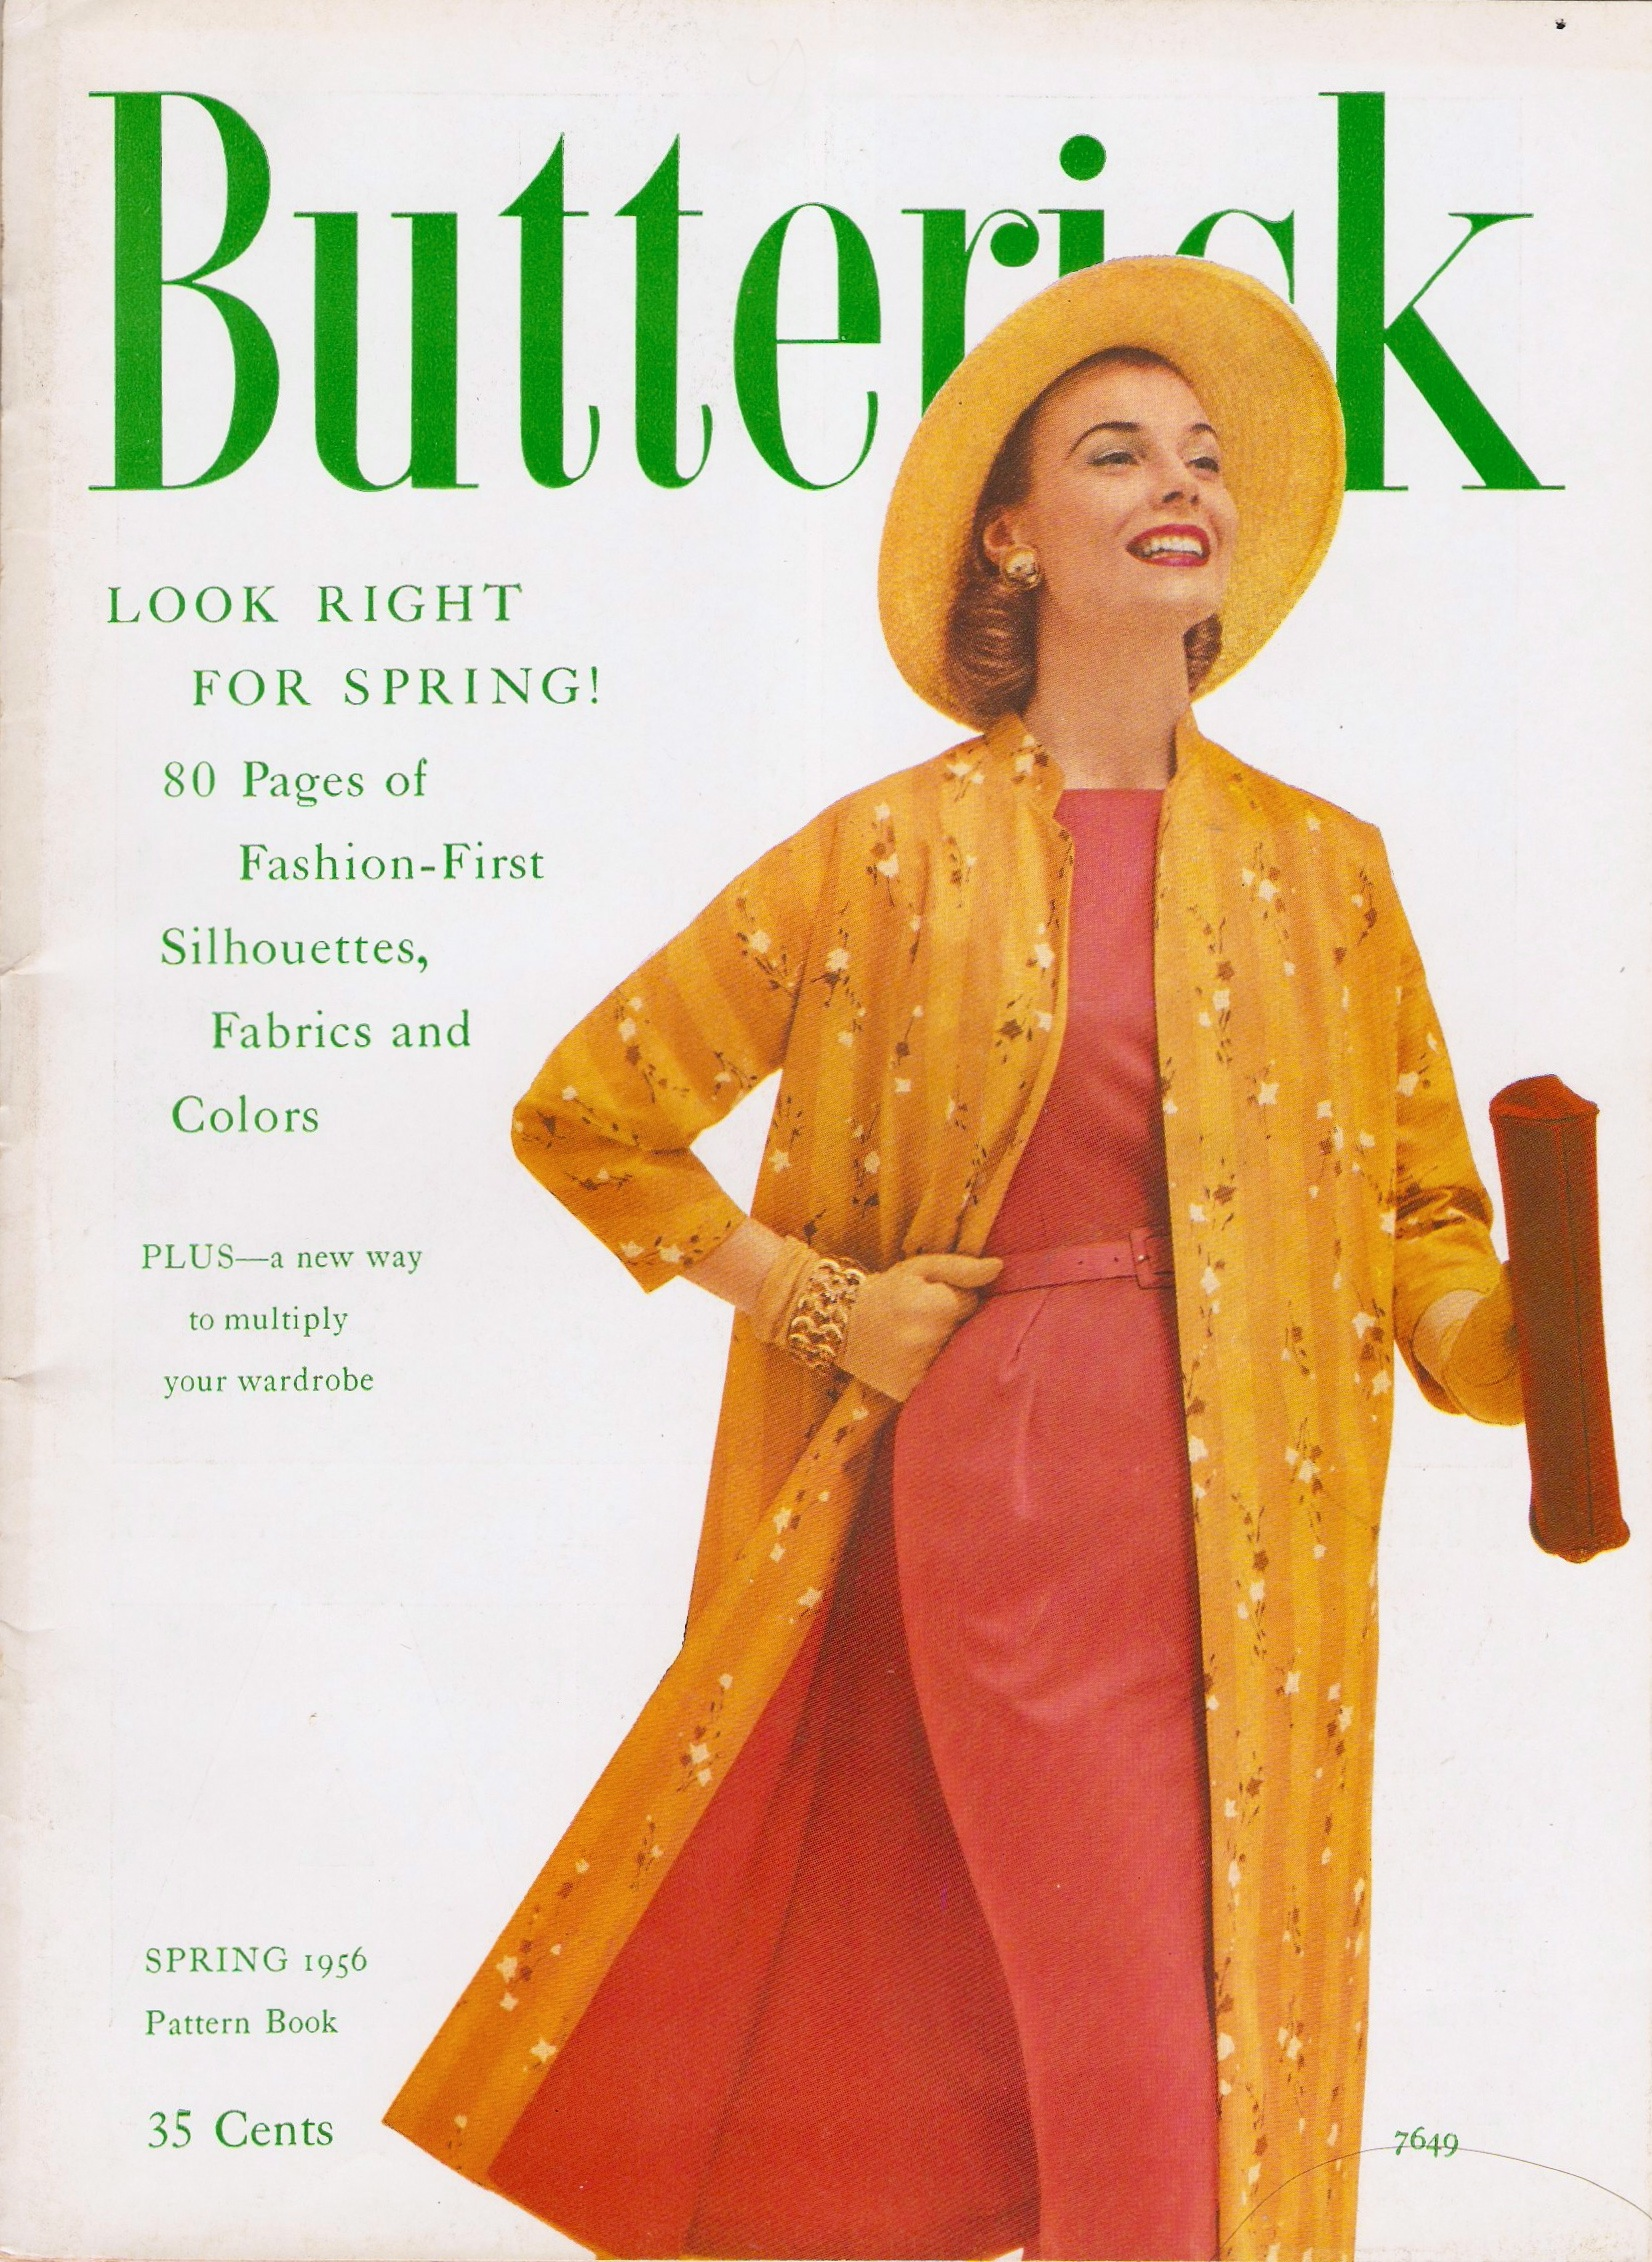 Butterick Pattern Book Spring 1956